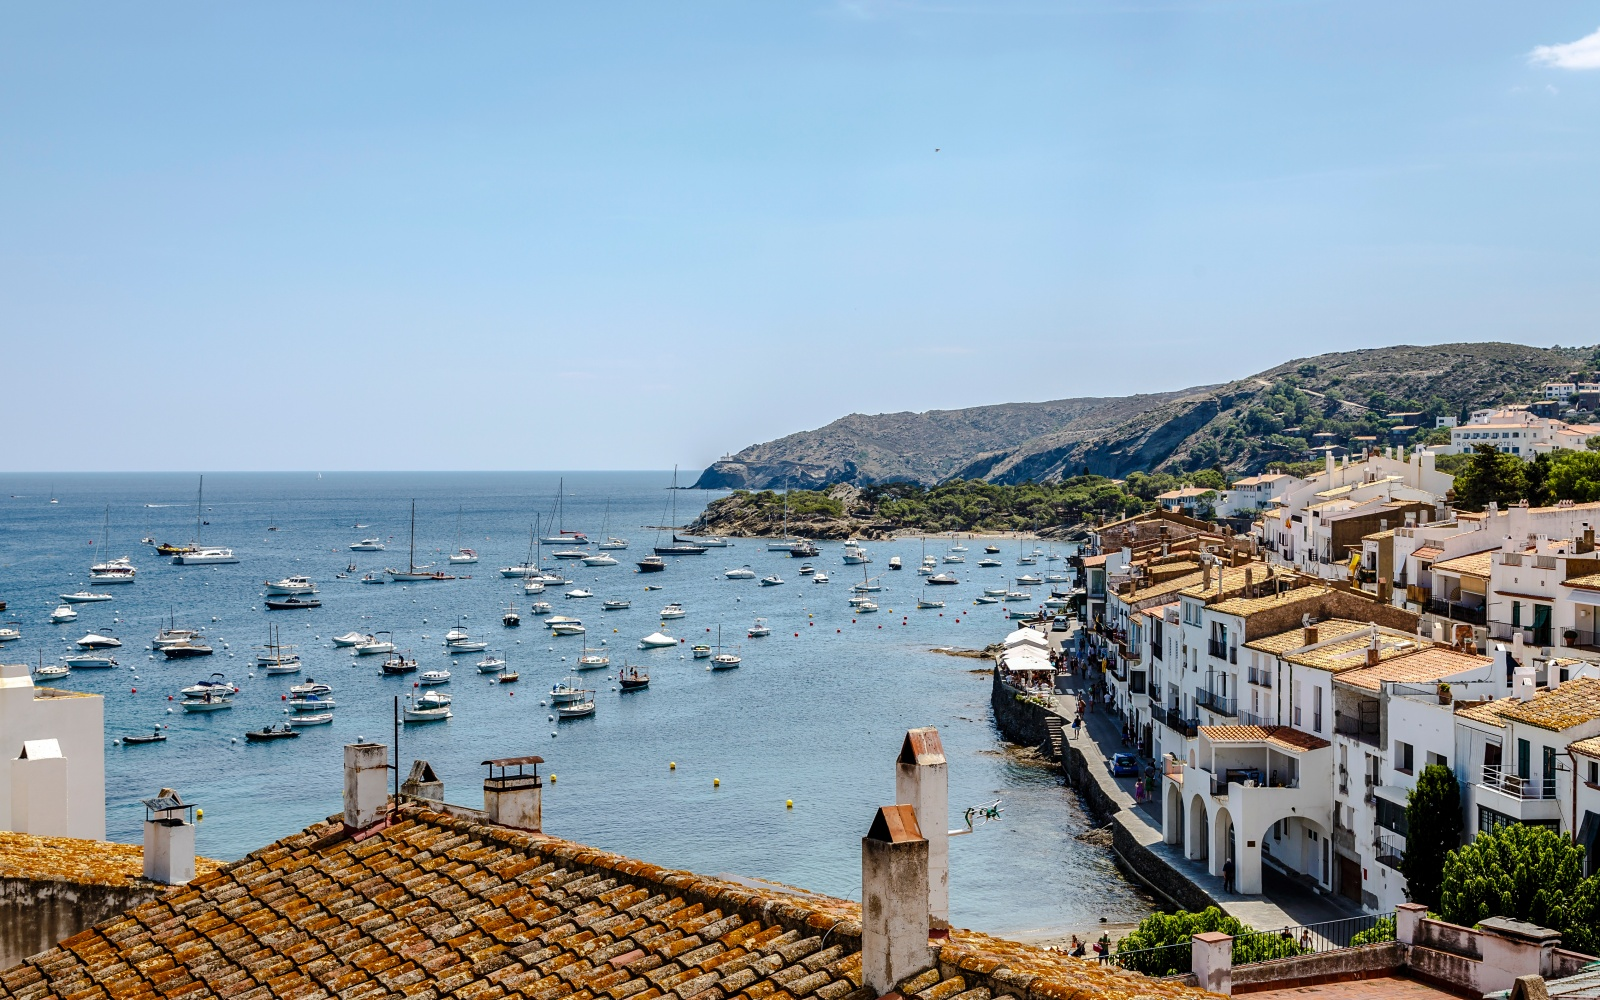 201409-w-worlds-prettiest-coastal-towns-cadaques-catalonia-spain